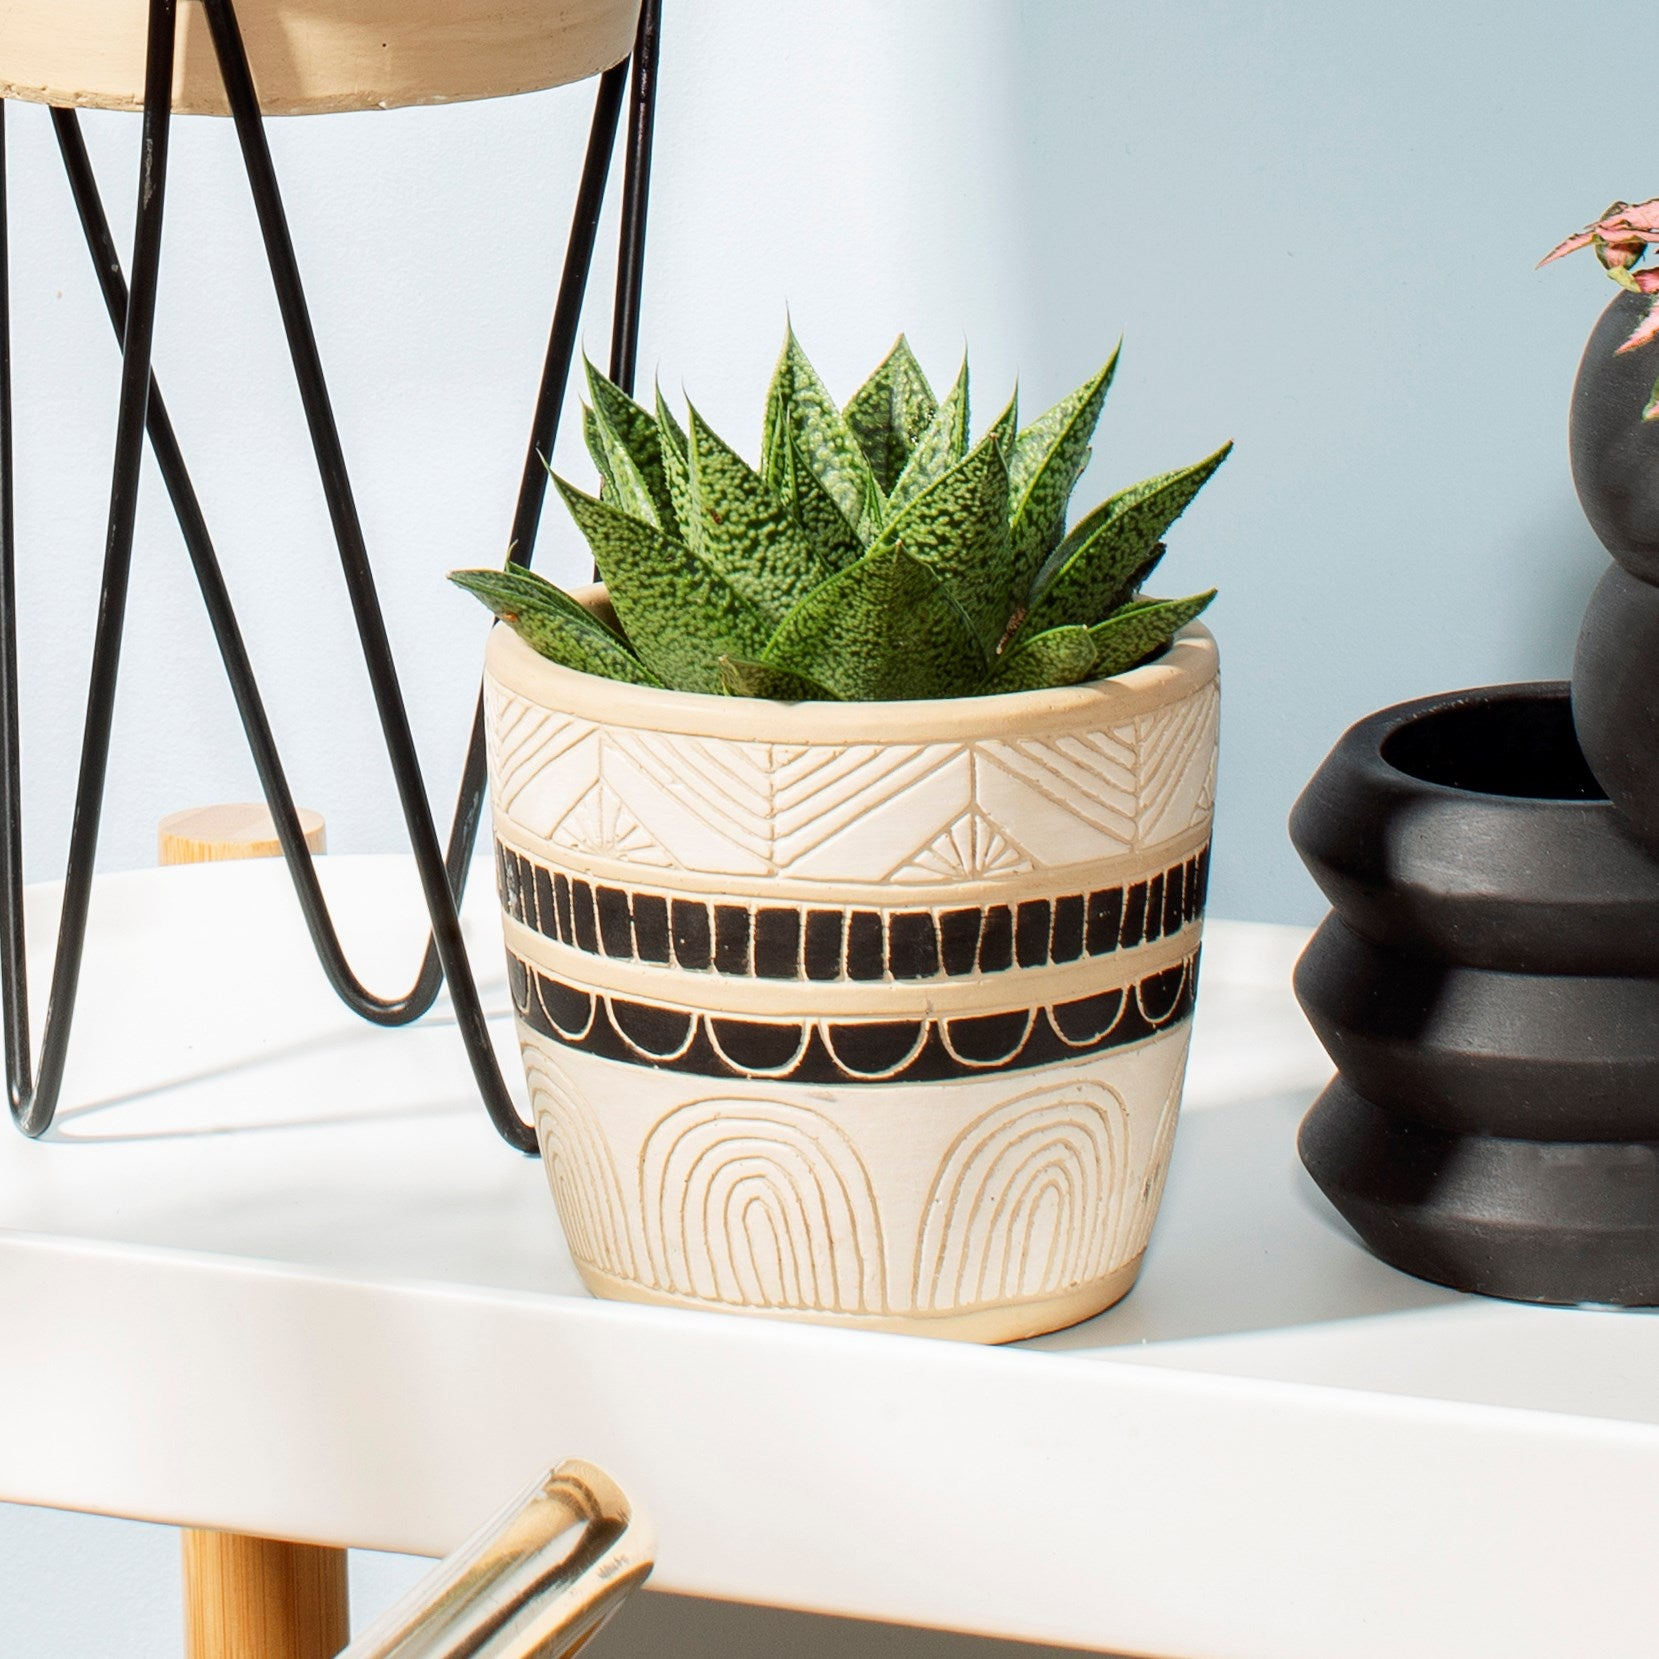 Black & White Sgraffito Planter